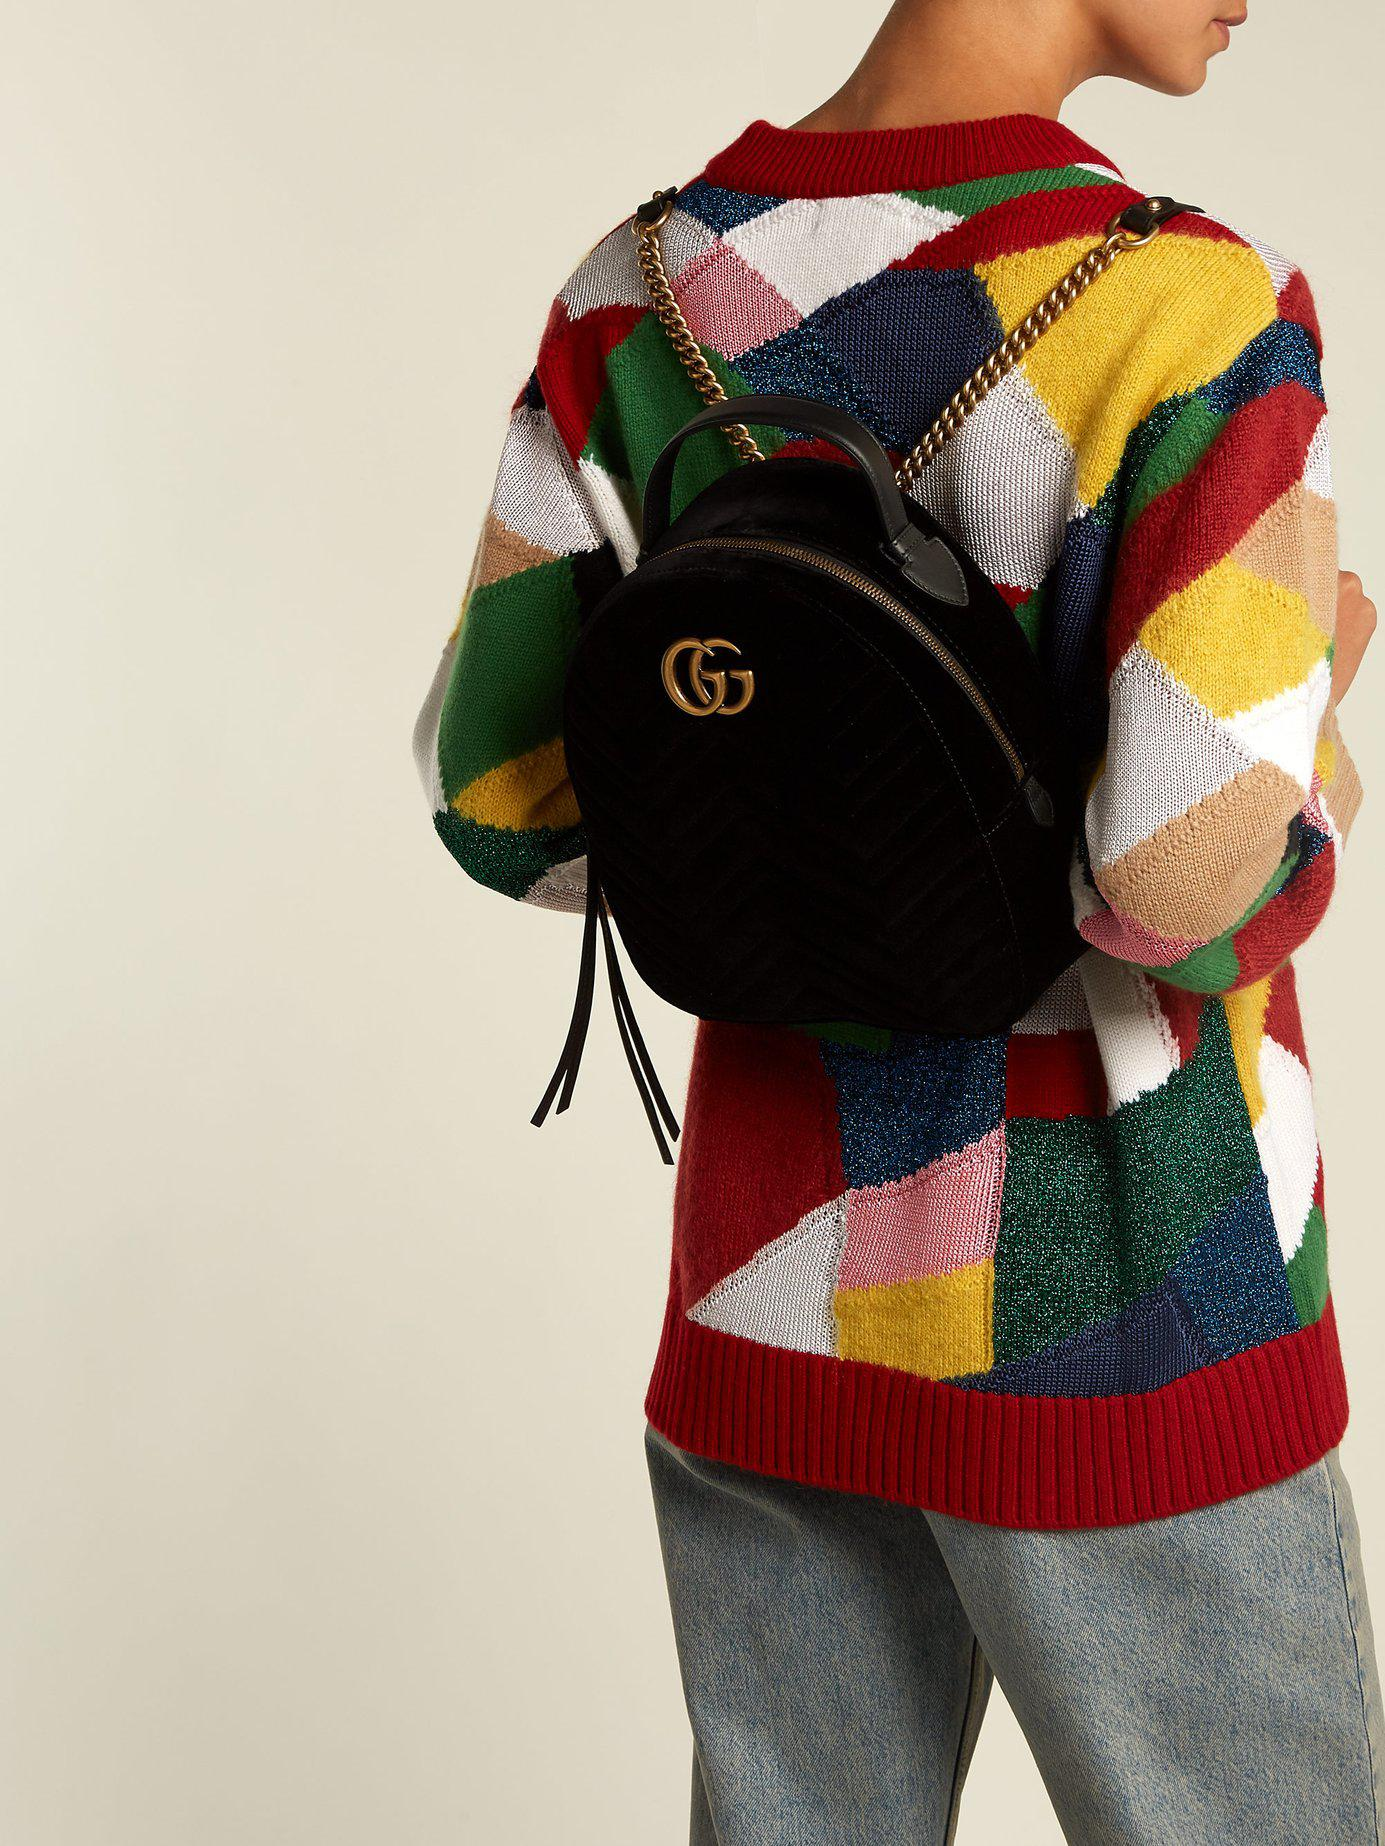 de3875f48601 Lyst - Gucci Gg Marmont Velvet Backpack in Black